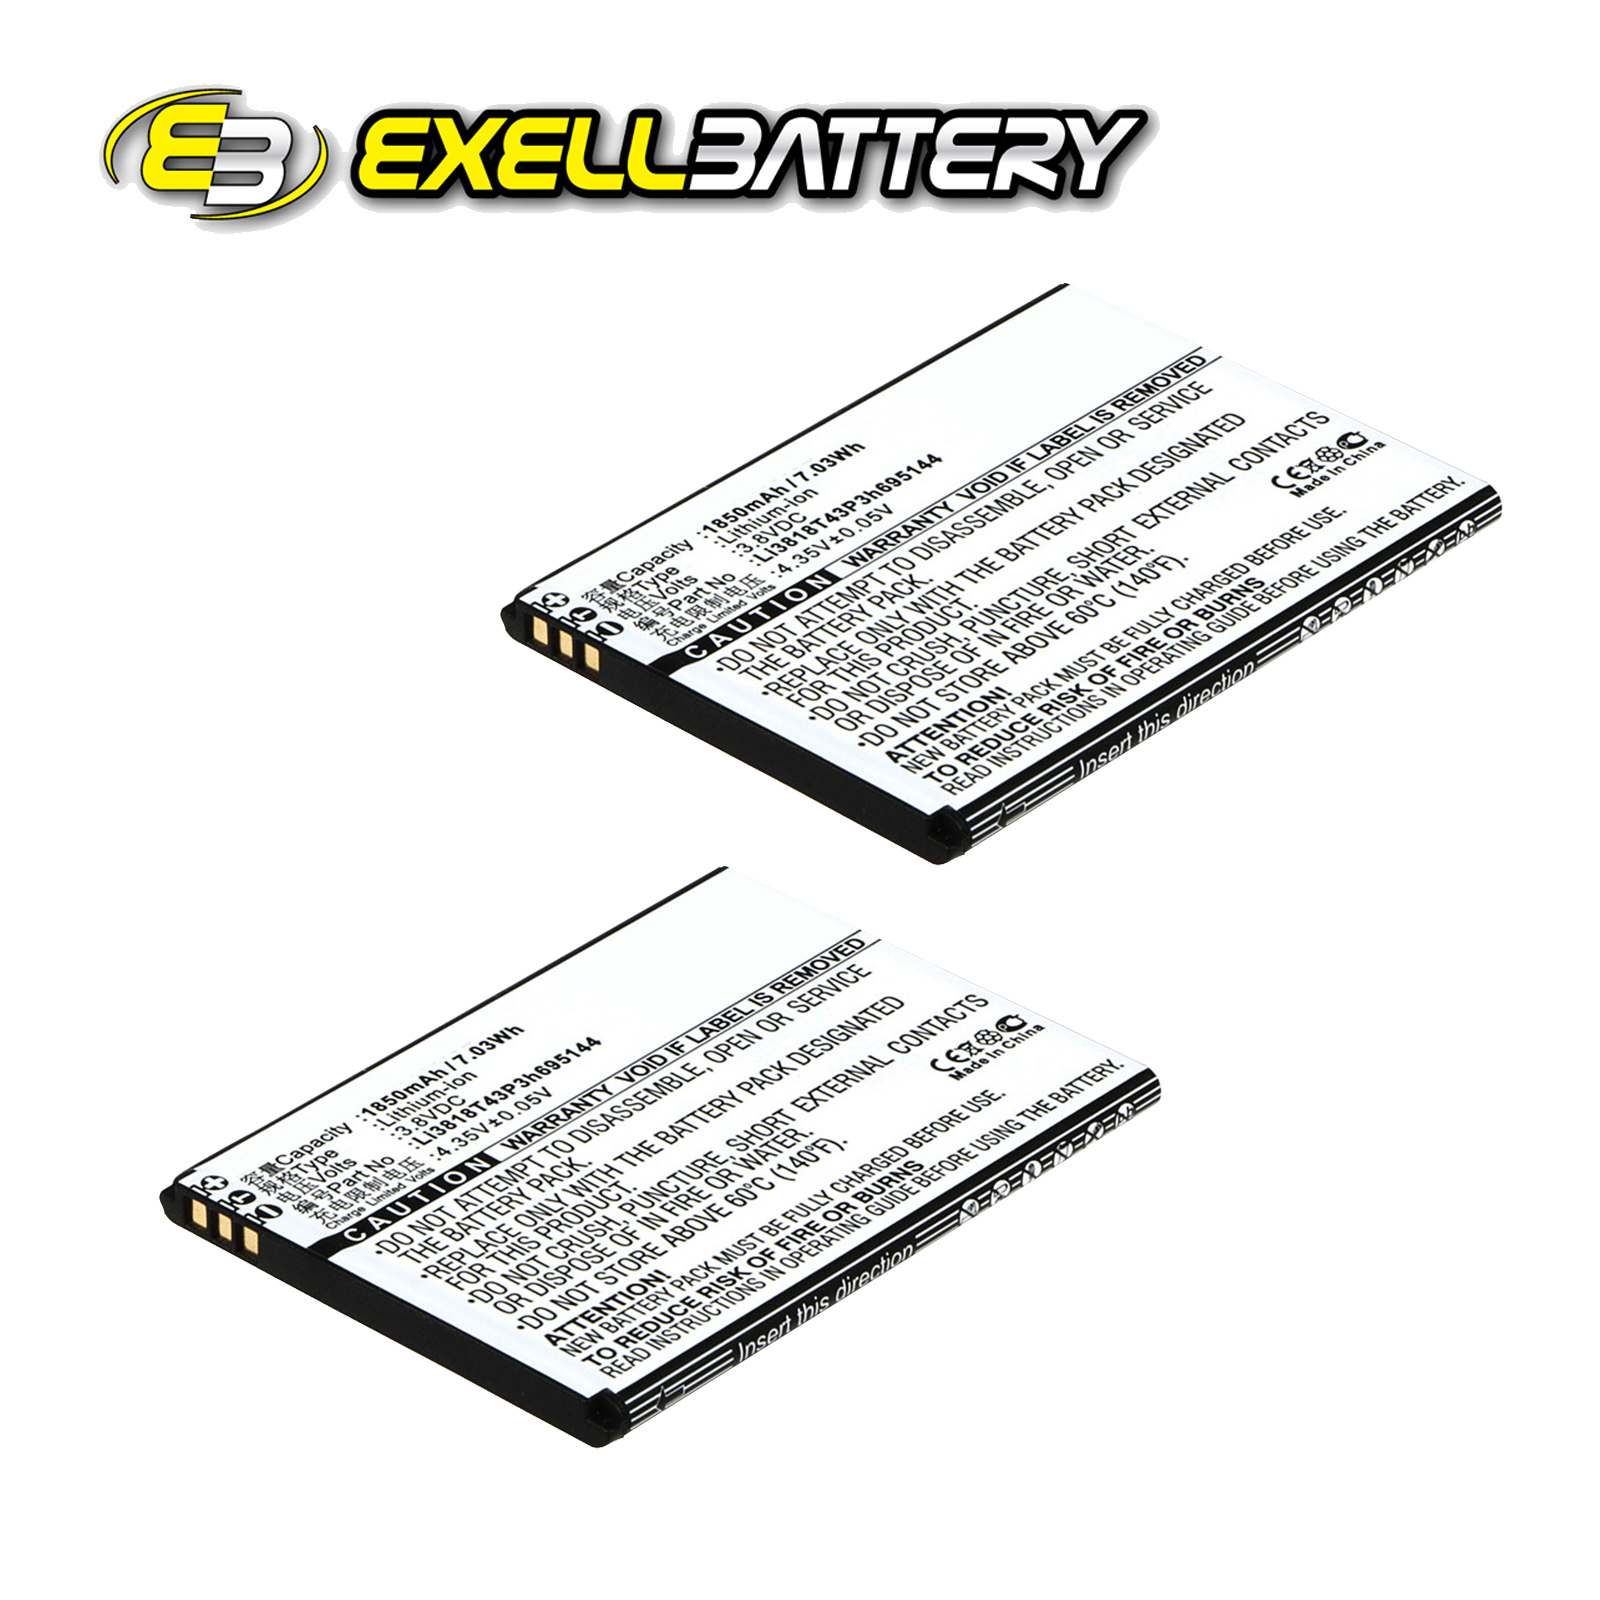 2x 3 8v Mah Mobile Smartphone Battery Fits Zte Kis 3